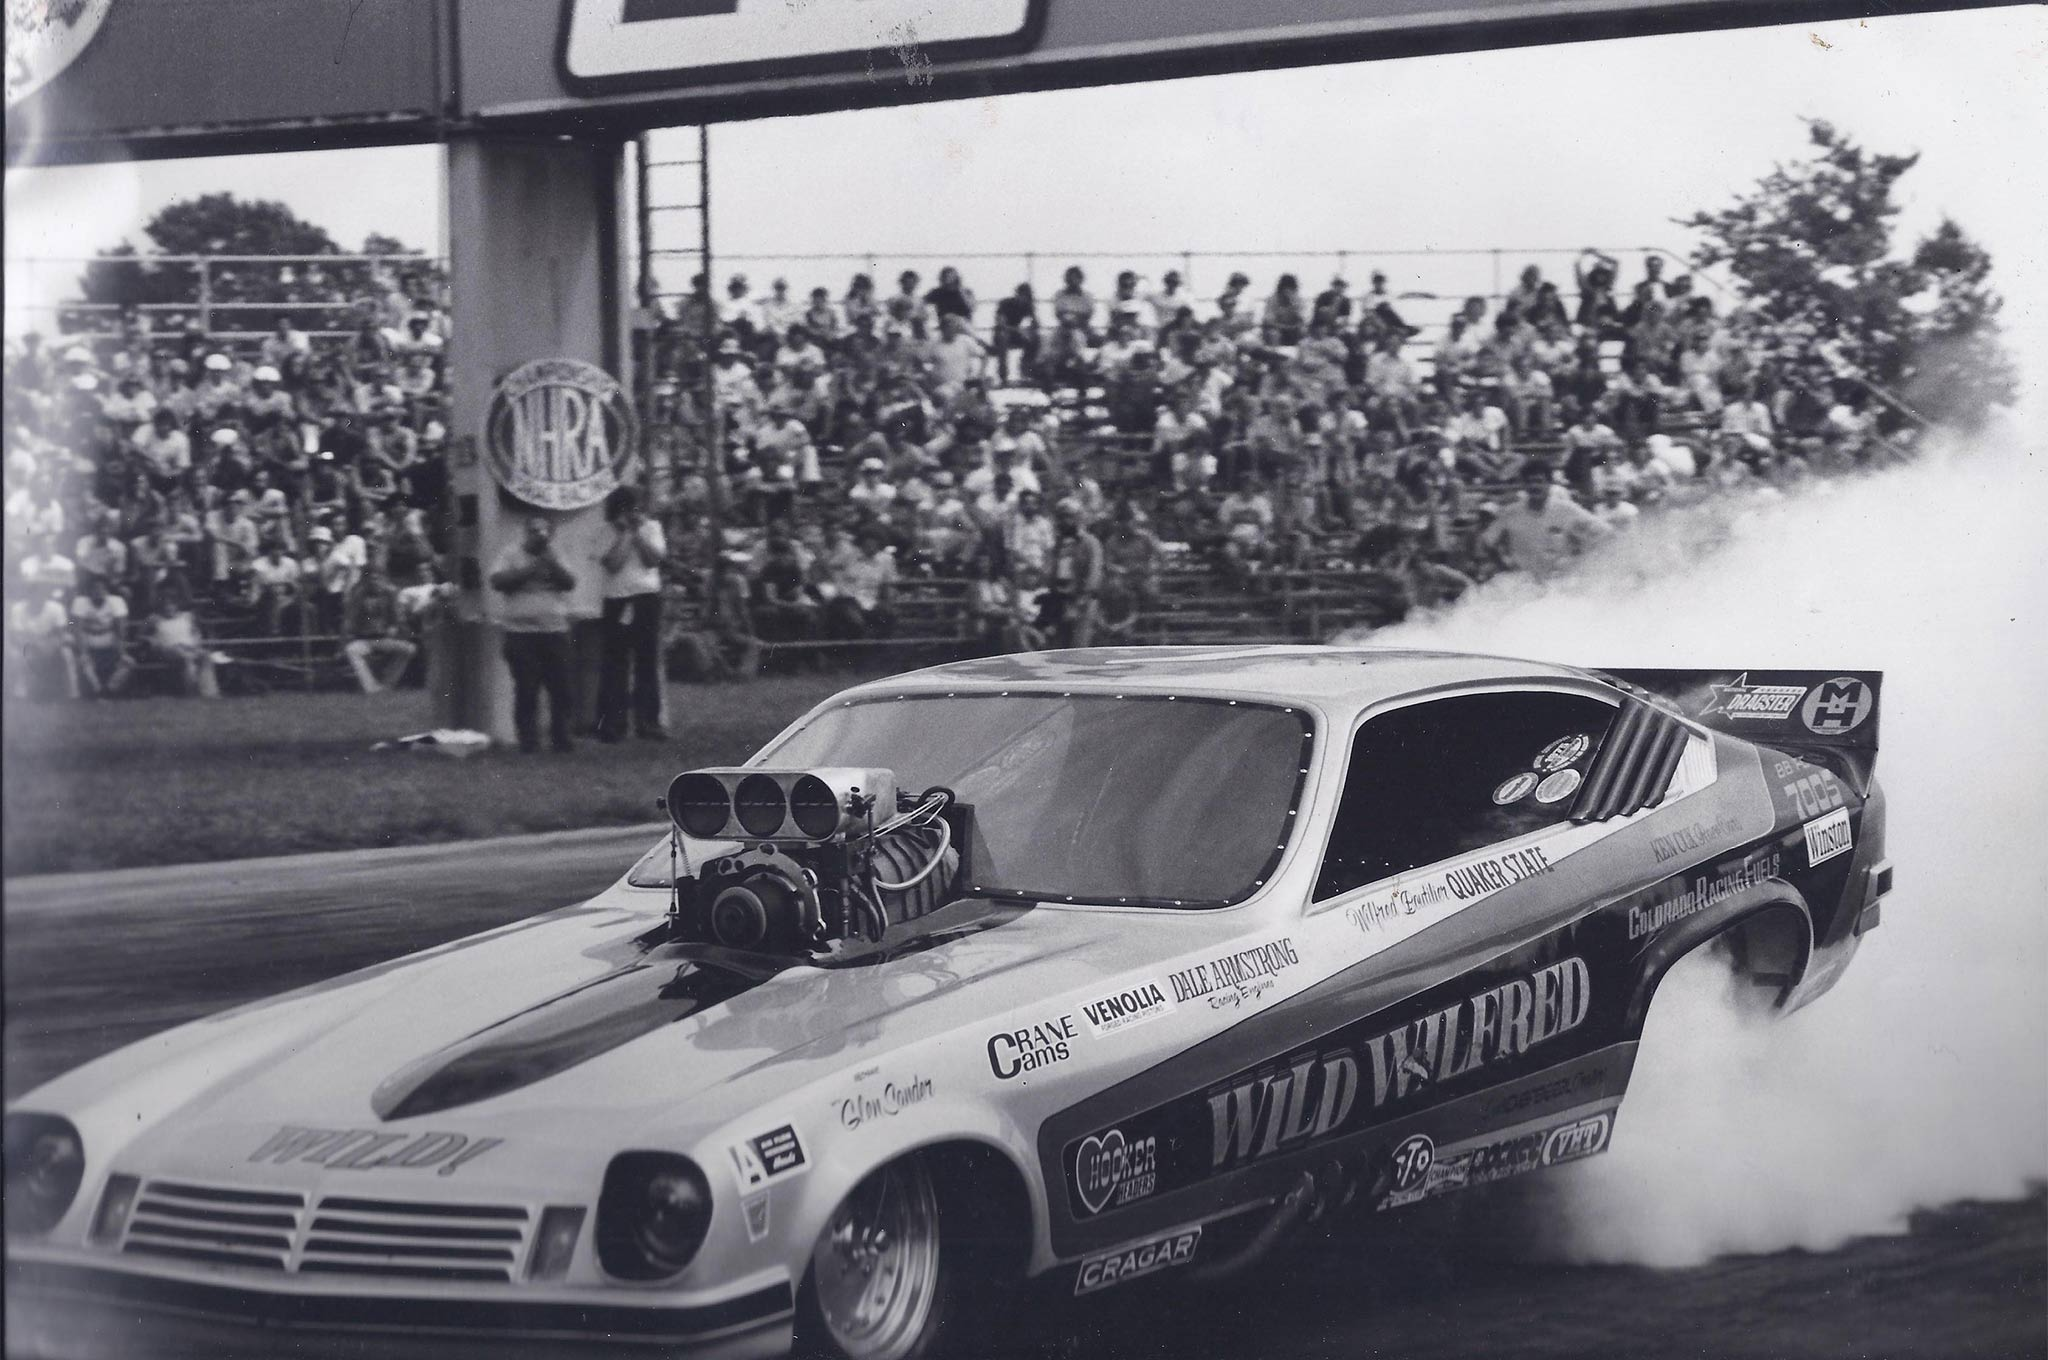 For the 1975 season, Boutilier acquired a new Ken Cox chassis, finishing second to Dale Armstrong at the Sportsnationals, then defeating Armstrong to win the Fallnationals at Seattle.